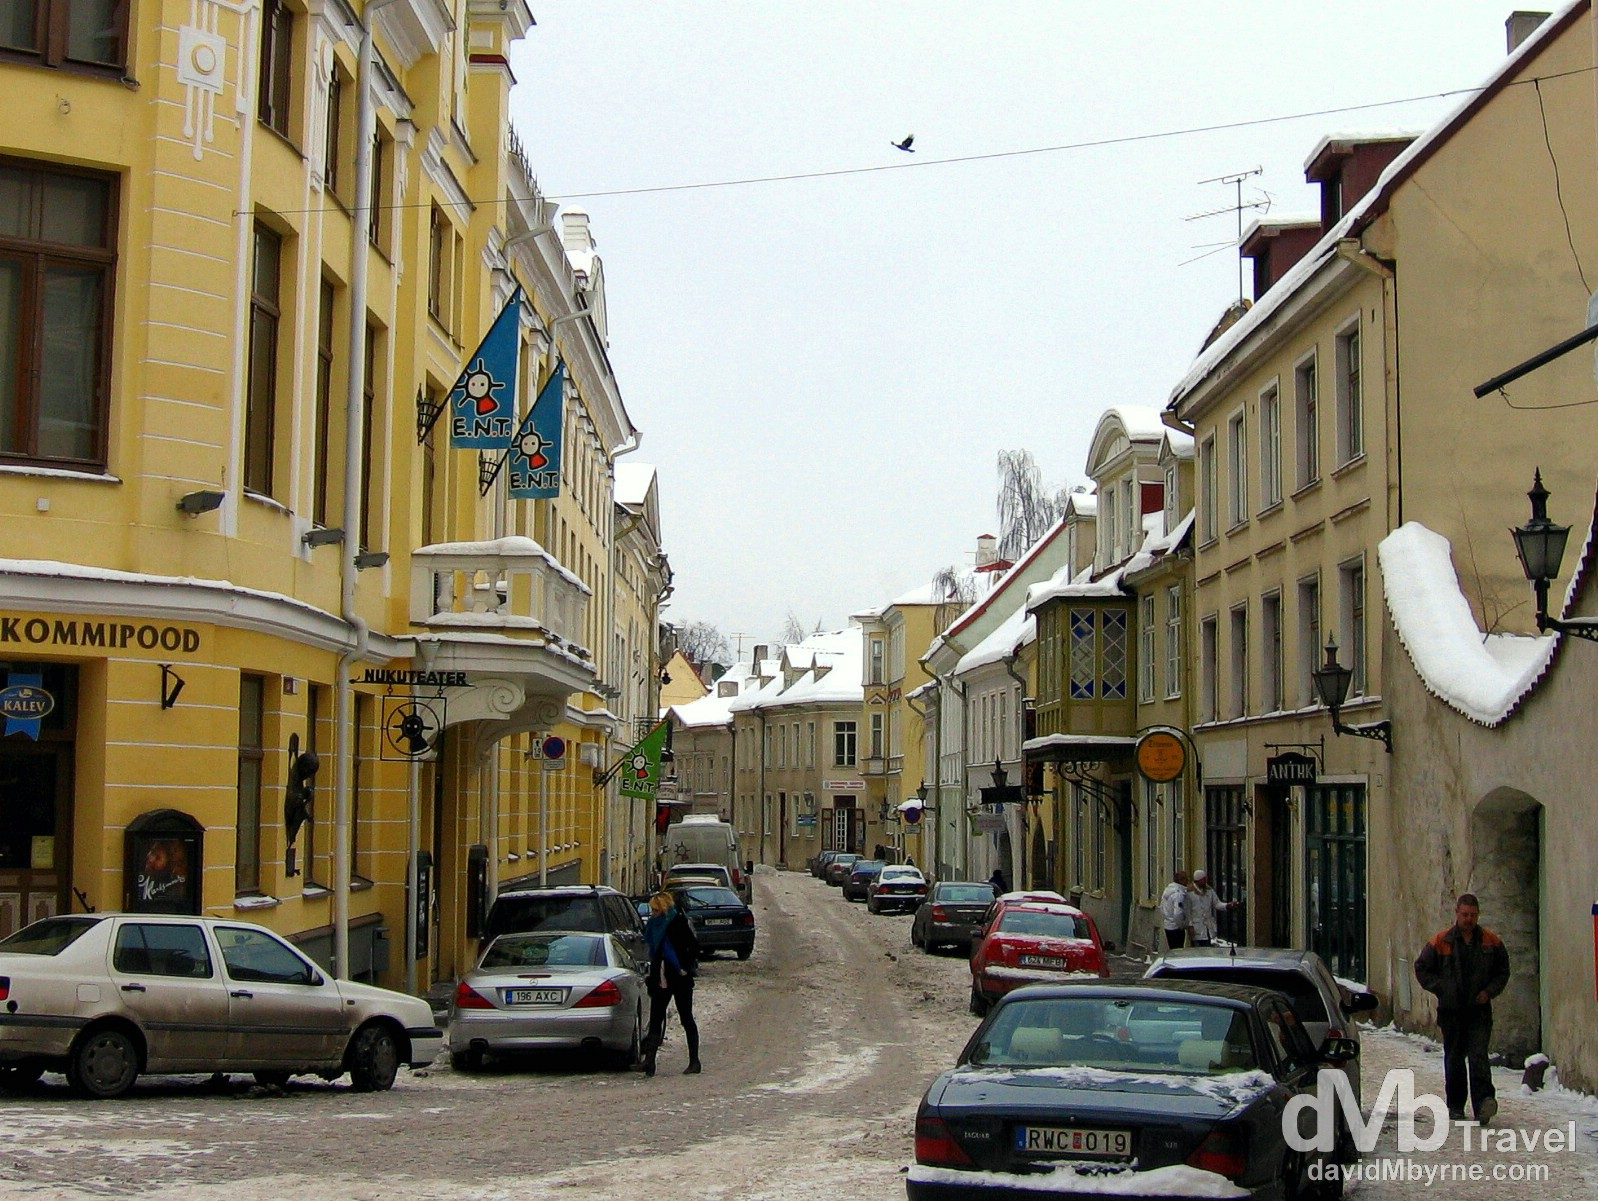 On the streets of Old Town, Tallinn, Estonia. March 2, 2006.